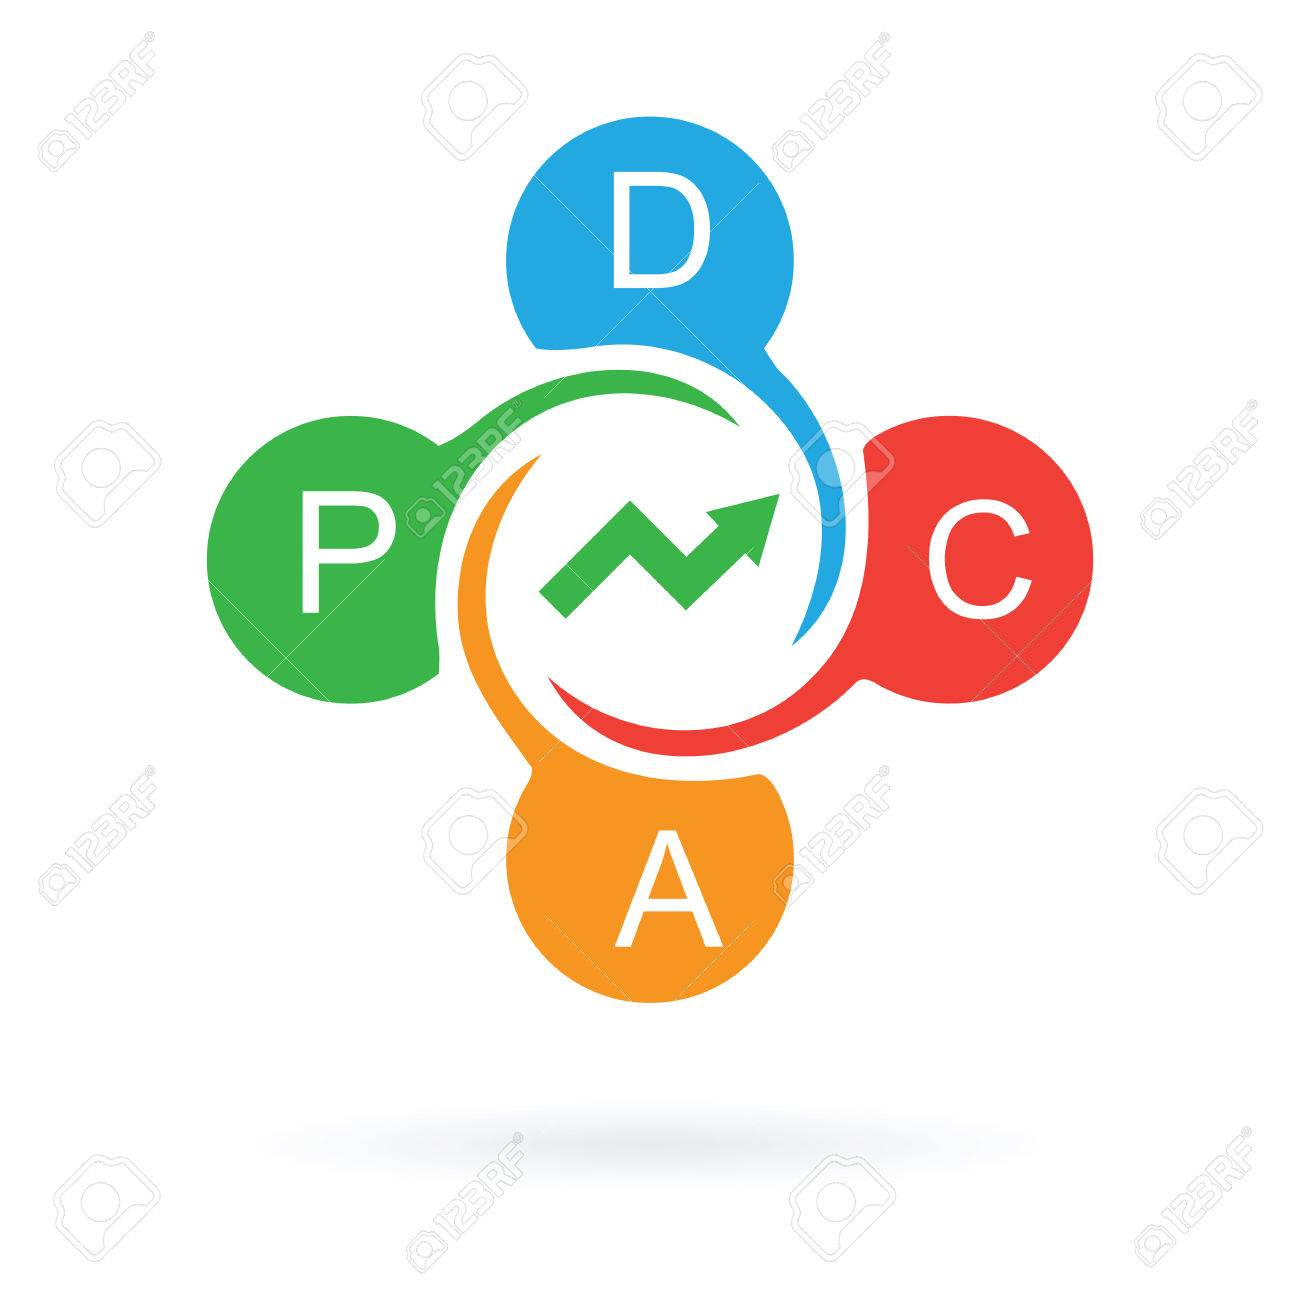 pdca cycle continuous improvement manufacturing approach abstract vector illustration - 61410271